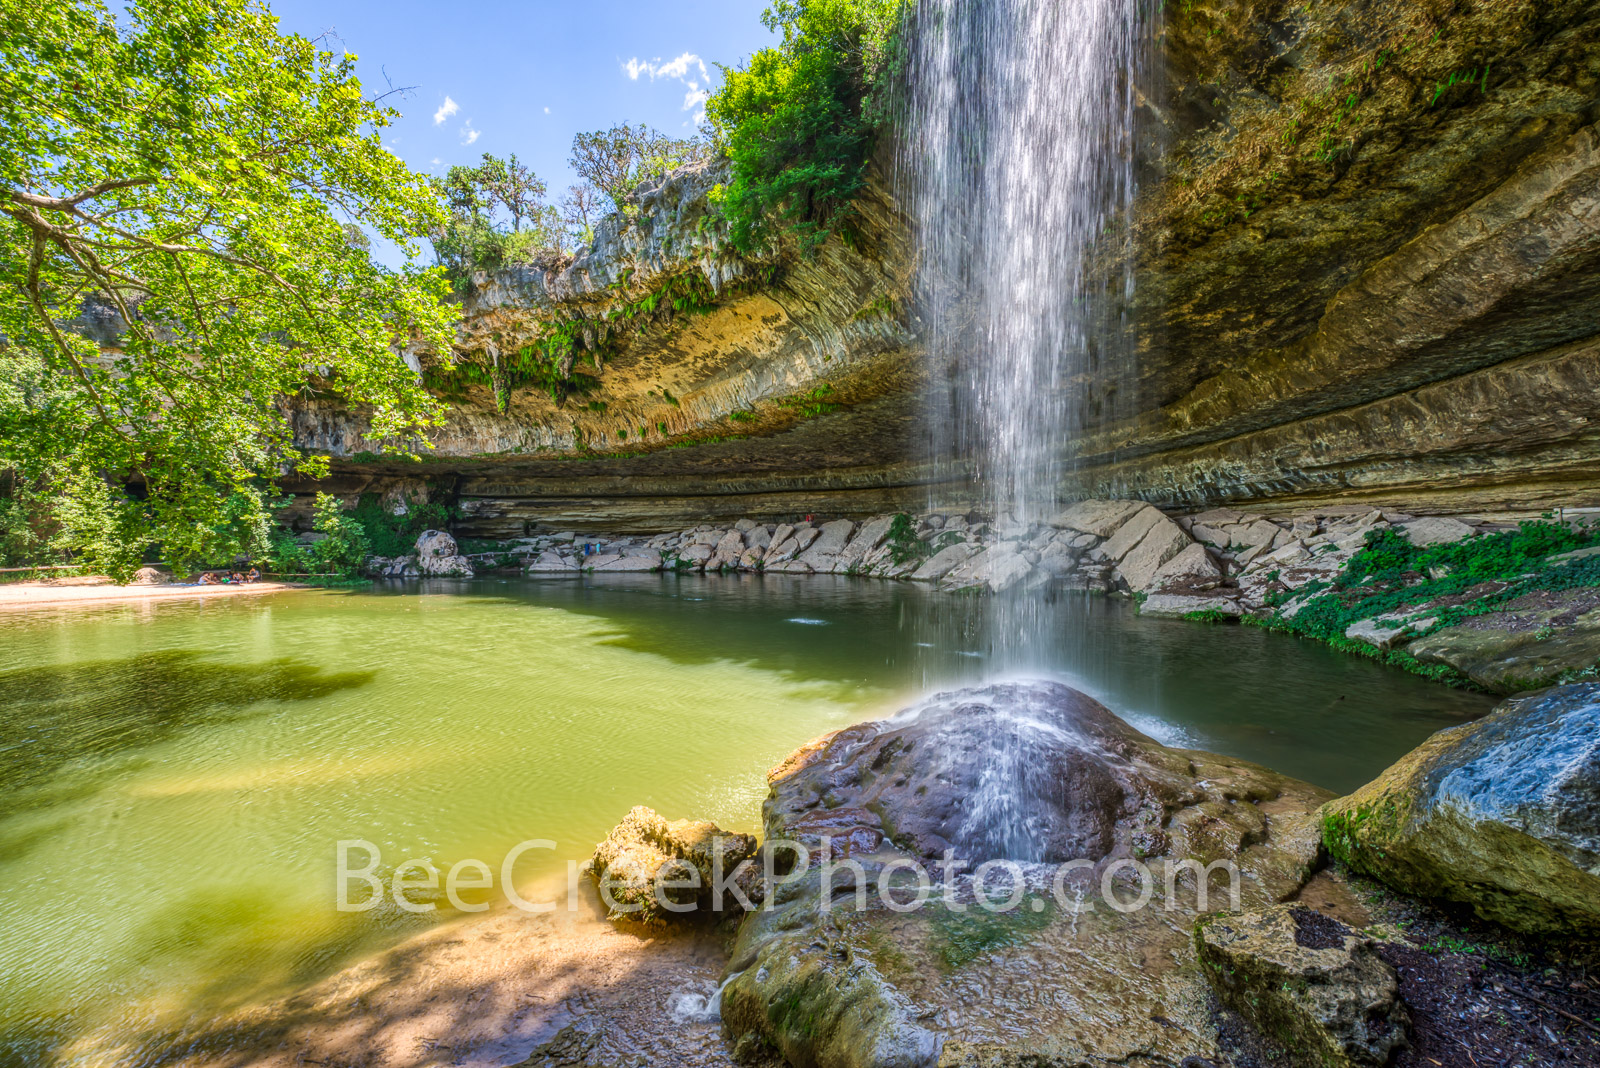 Hamilton Pool Waterfall - We capture the Water Fall at Hamilton Pool which is located out side of Austin Texas in the Hill Country...